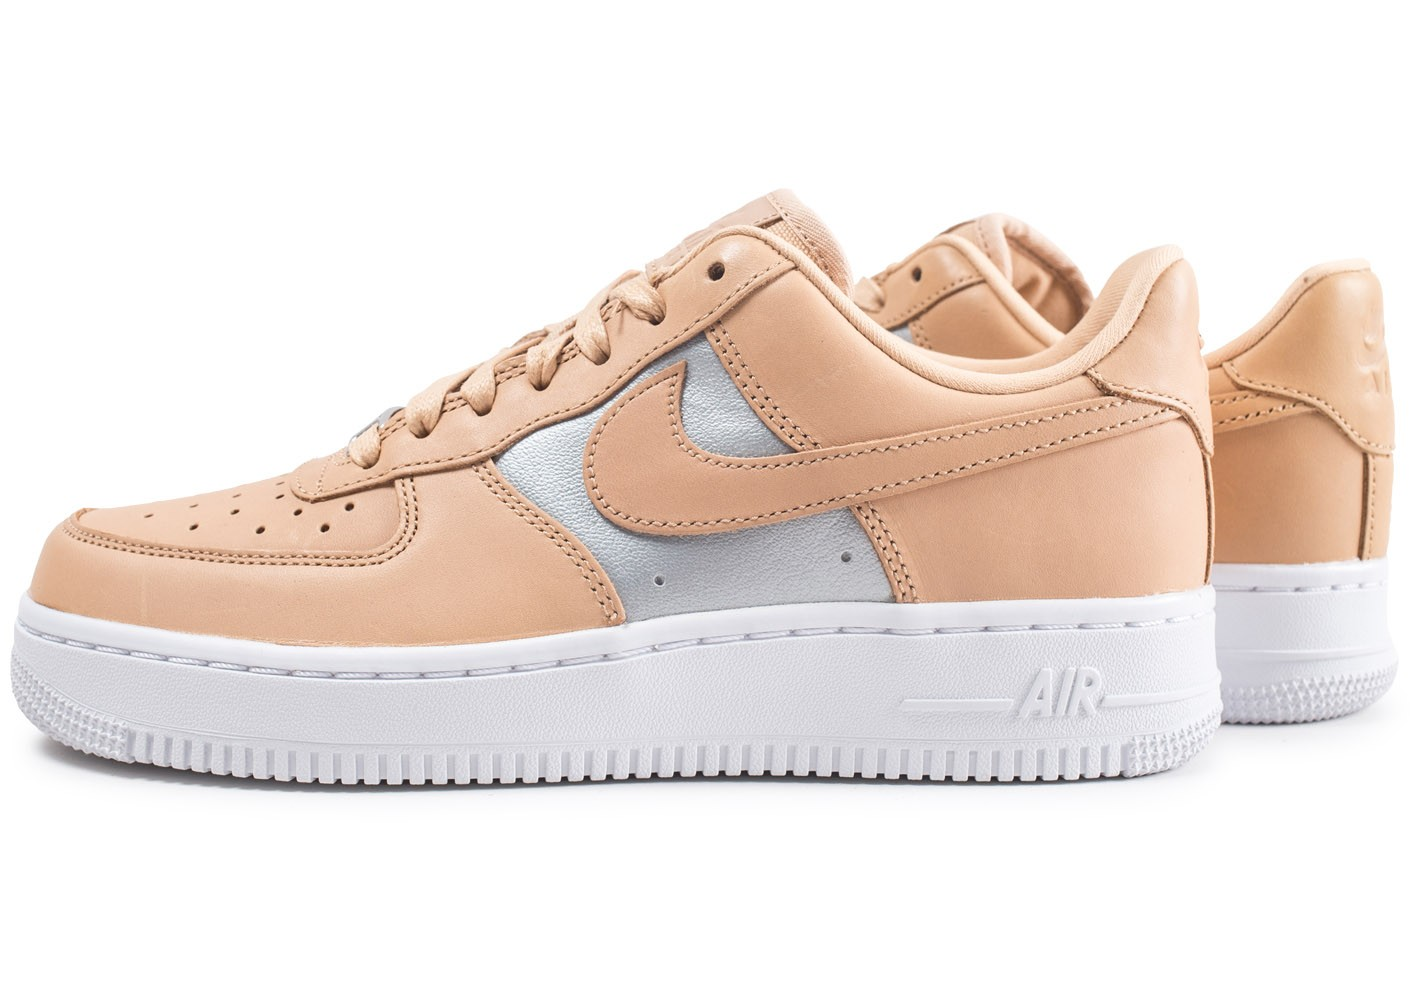 air force one femme blanche et argent